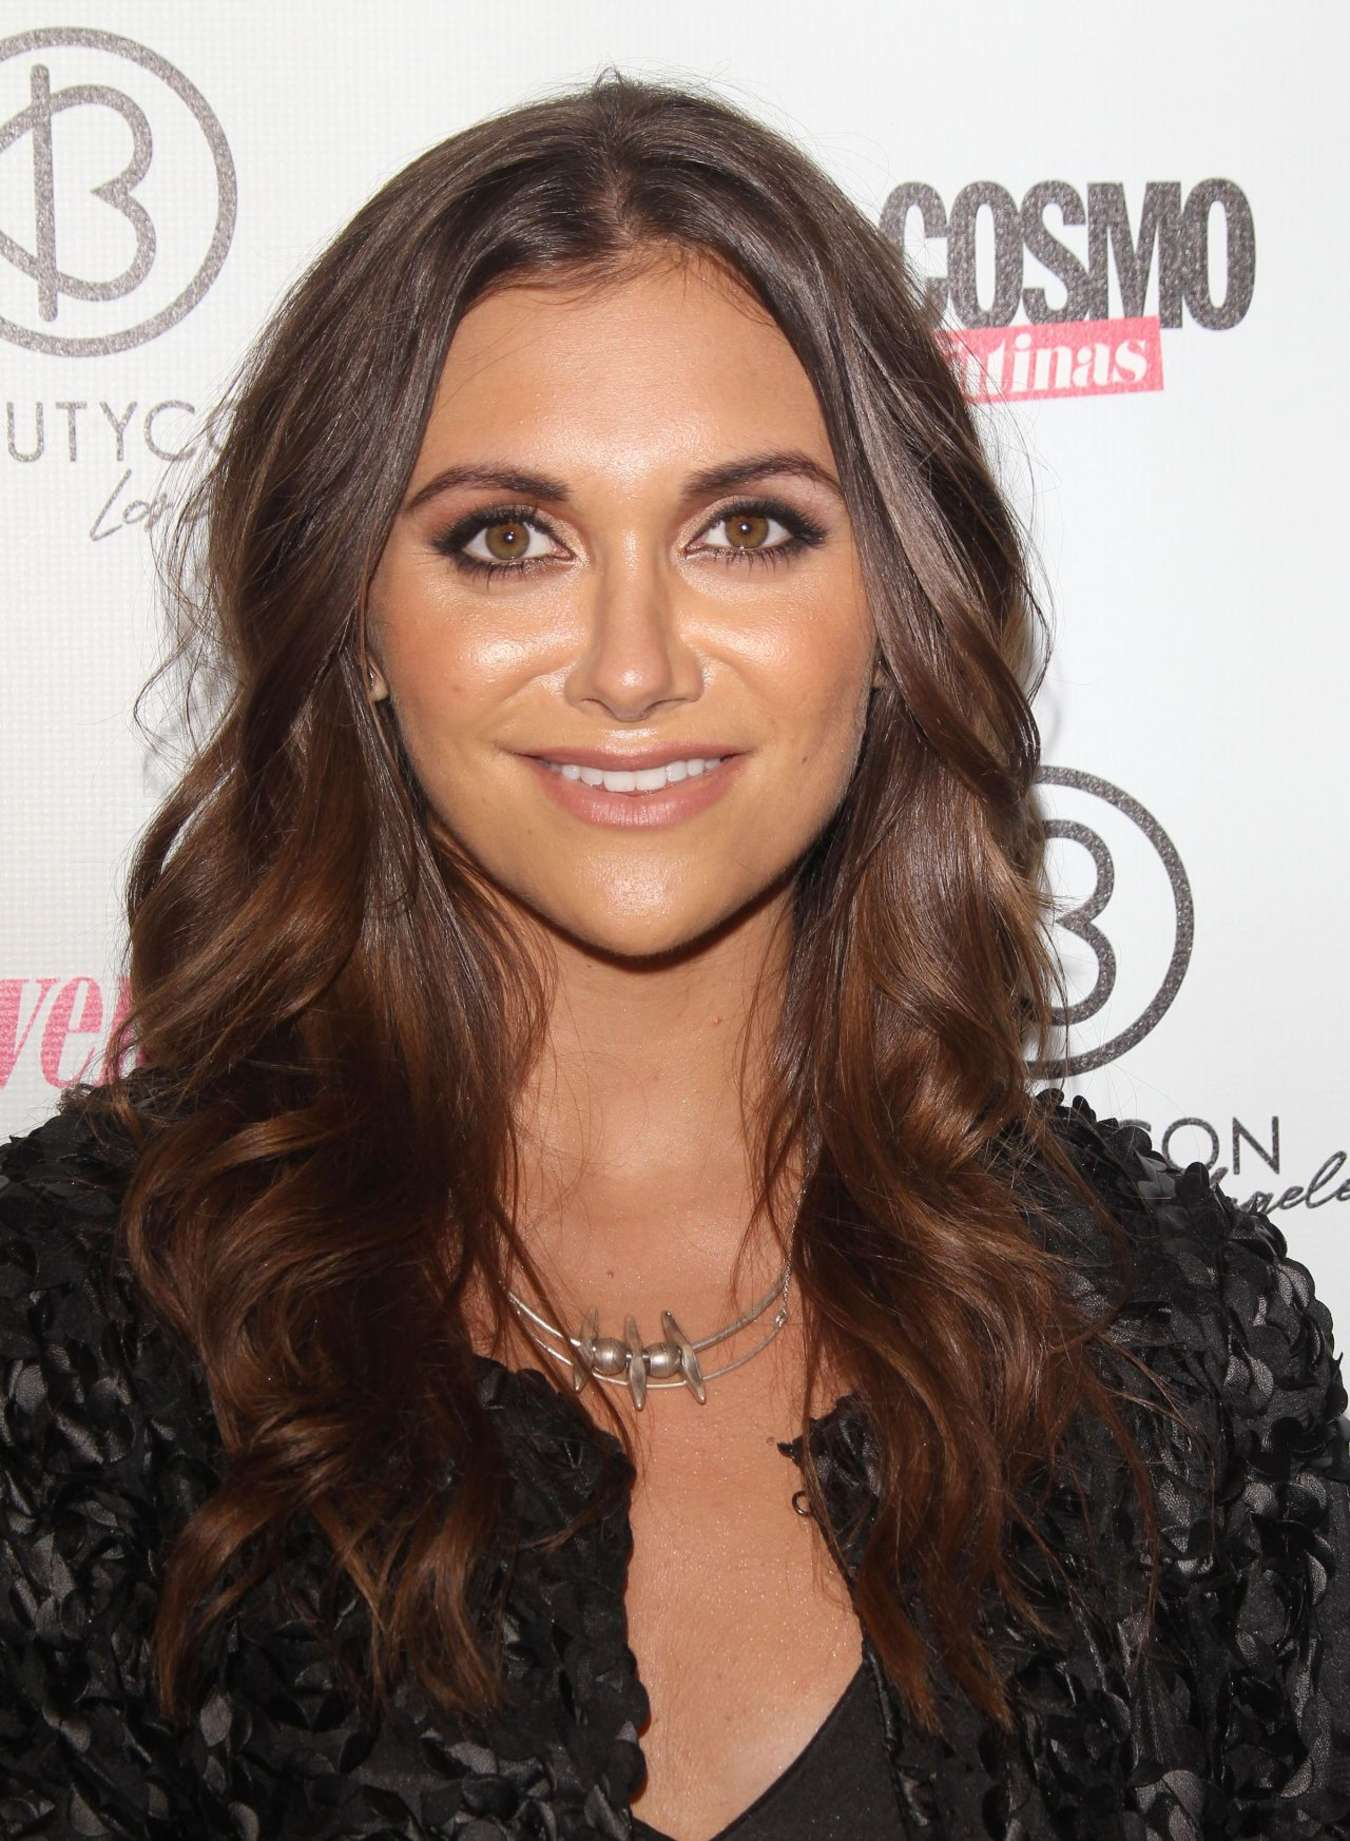 Alyson Stoner BeautyCon in Los Angeles